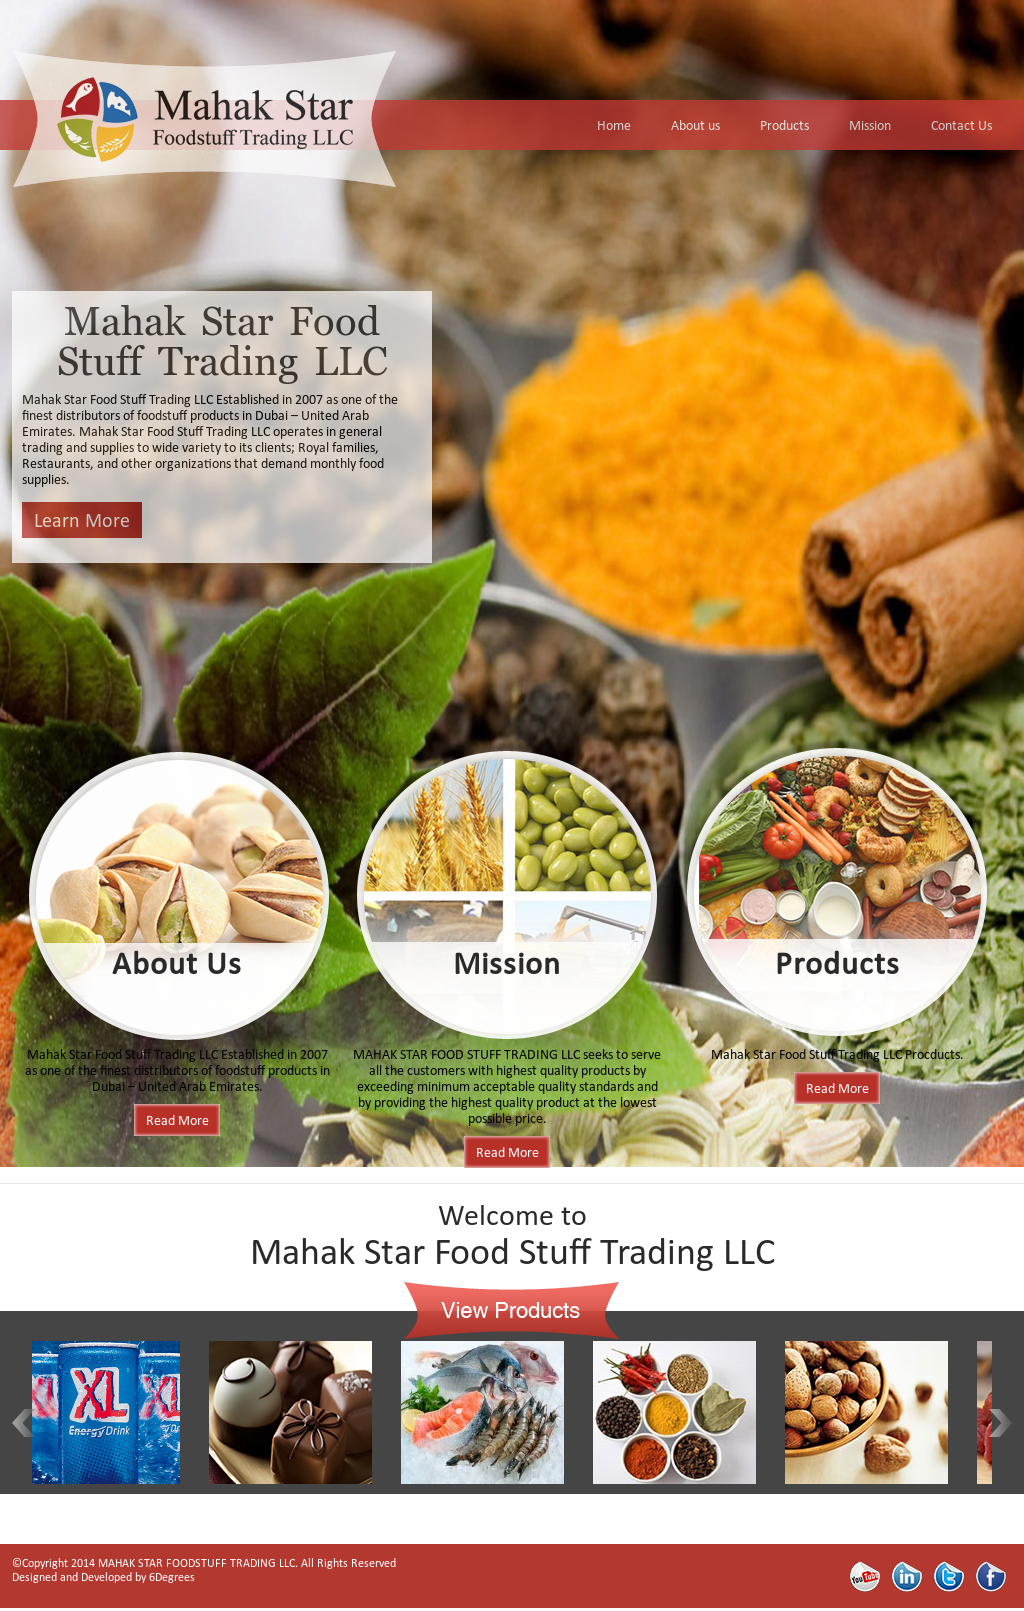 Mahak Star Foodstuff Trading Competitors, Revenue and